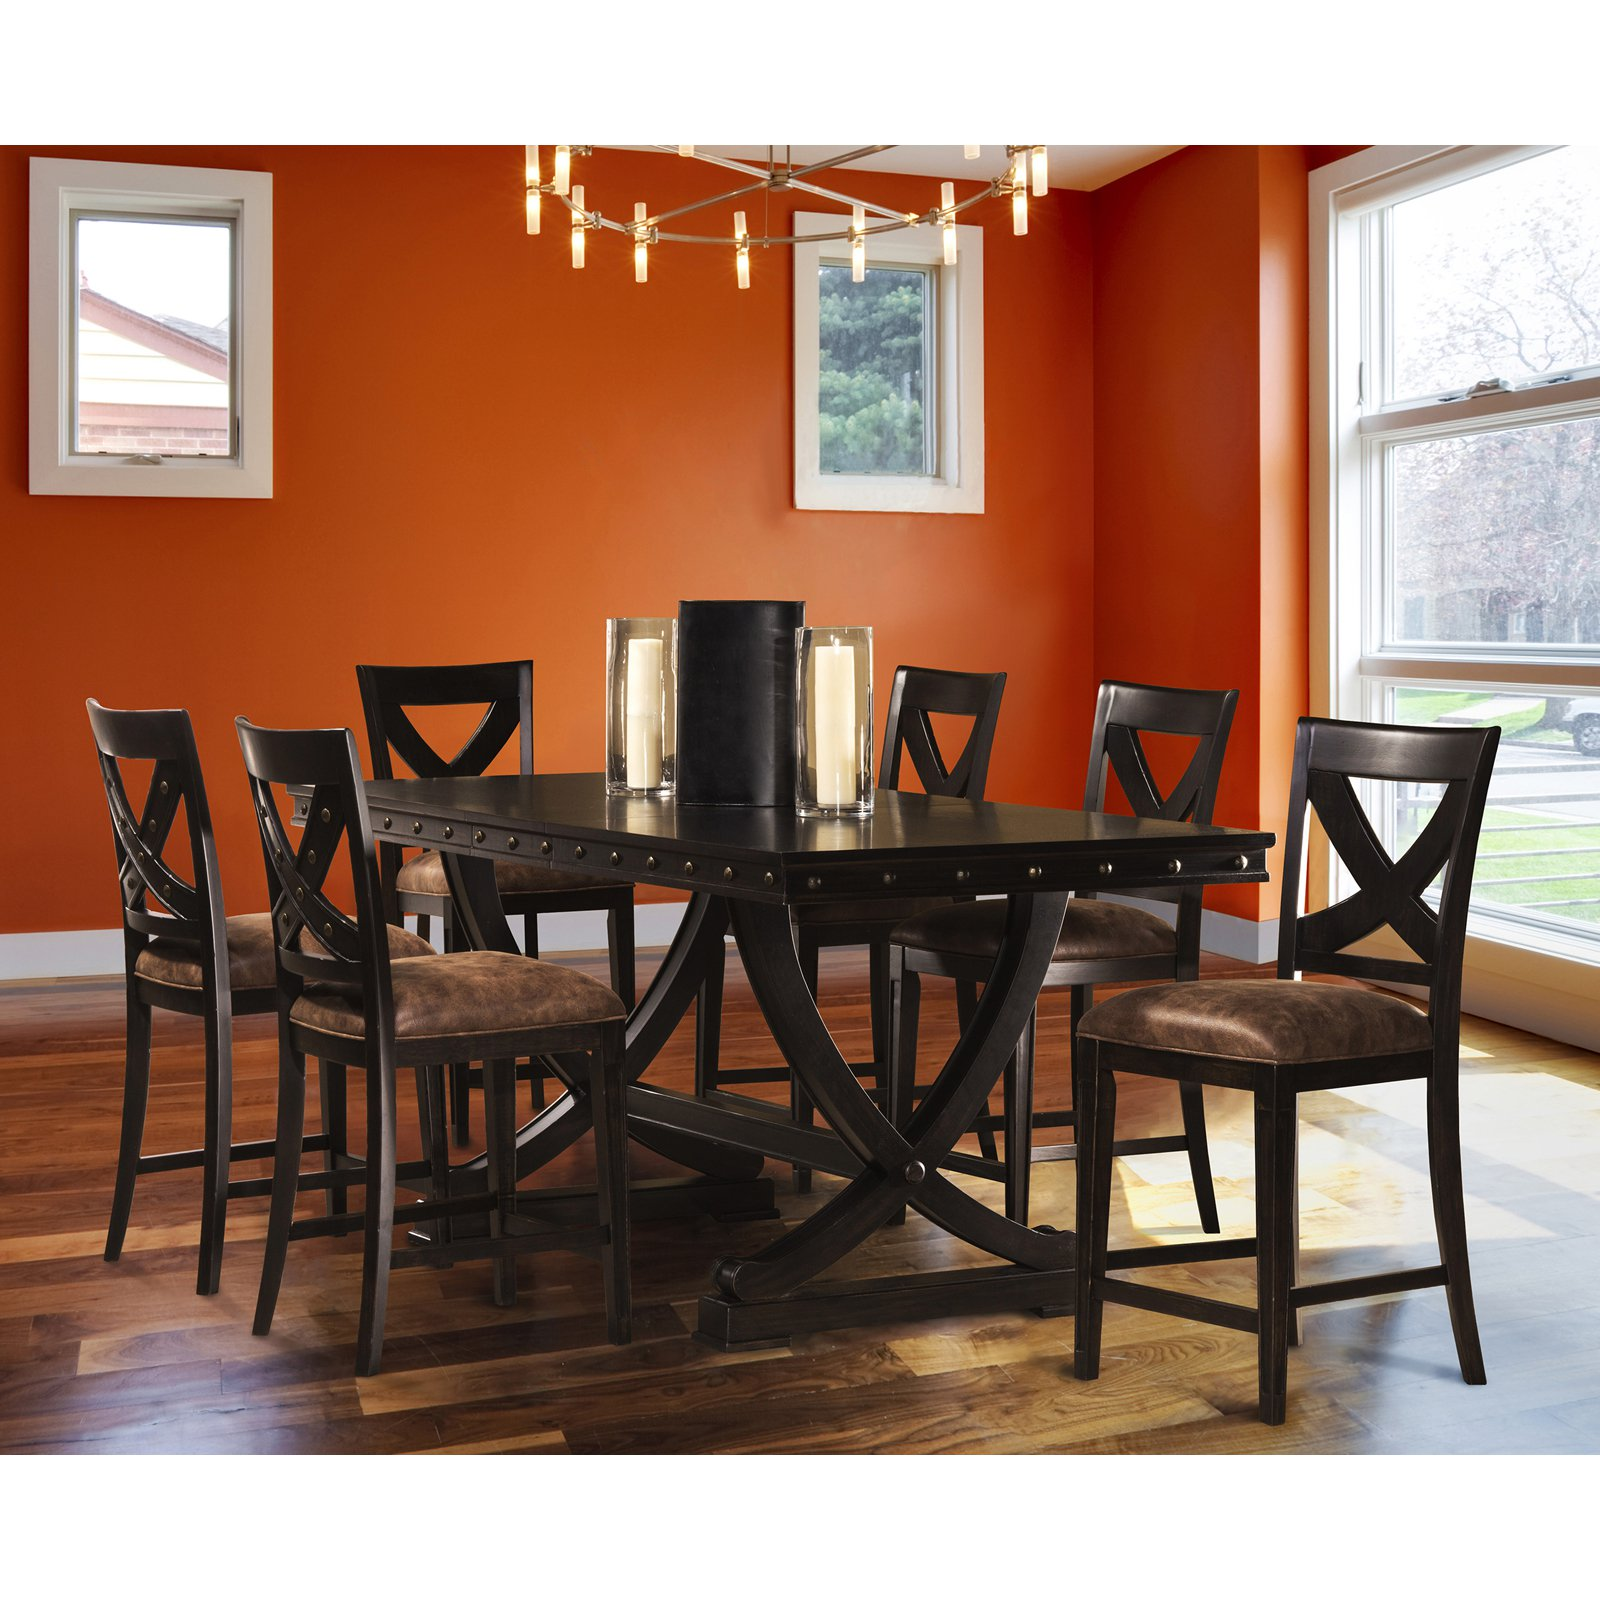 Hillsdale Santa Fe 7 Piece Counter Height Dining Set